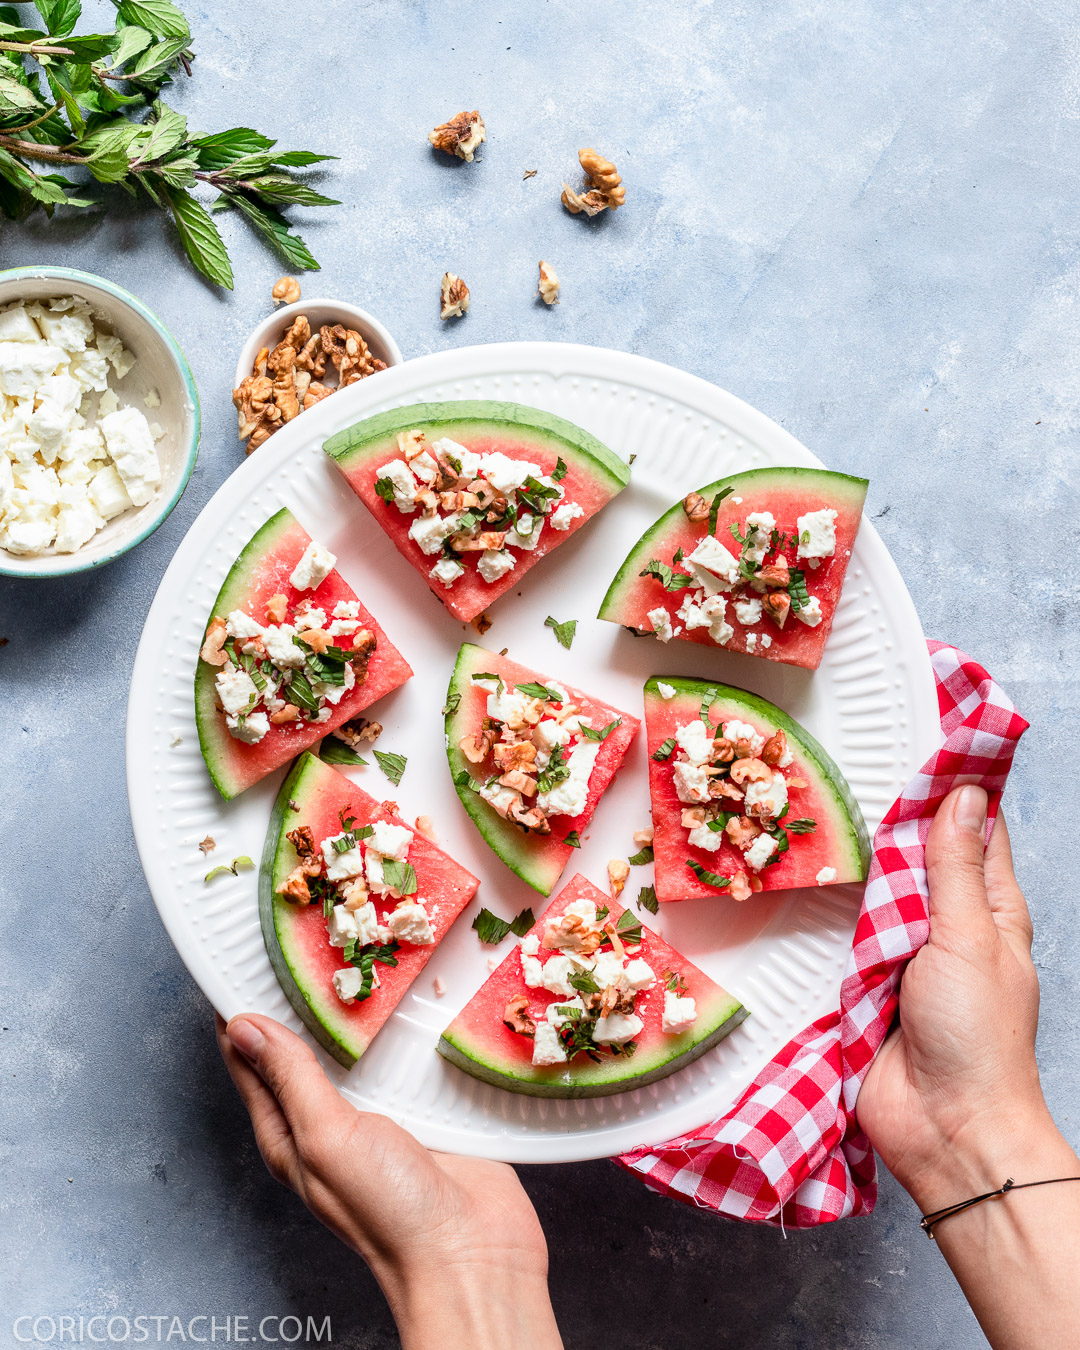 Watermelon Snack with Feta, Mint & Walnuts